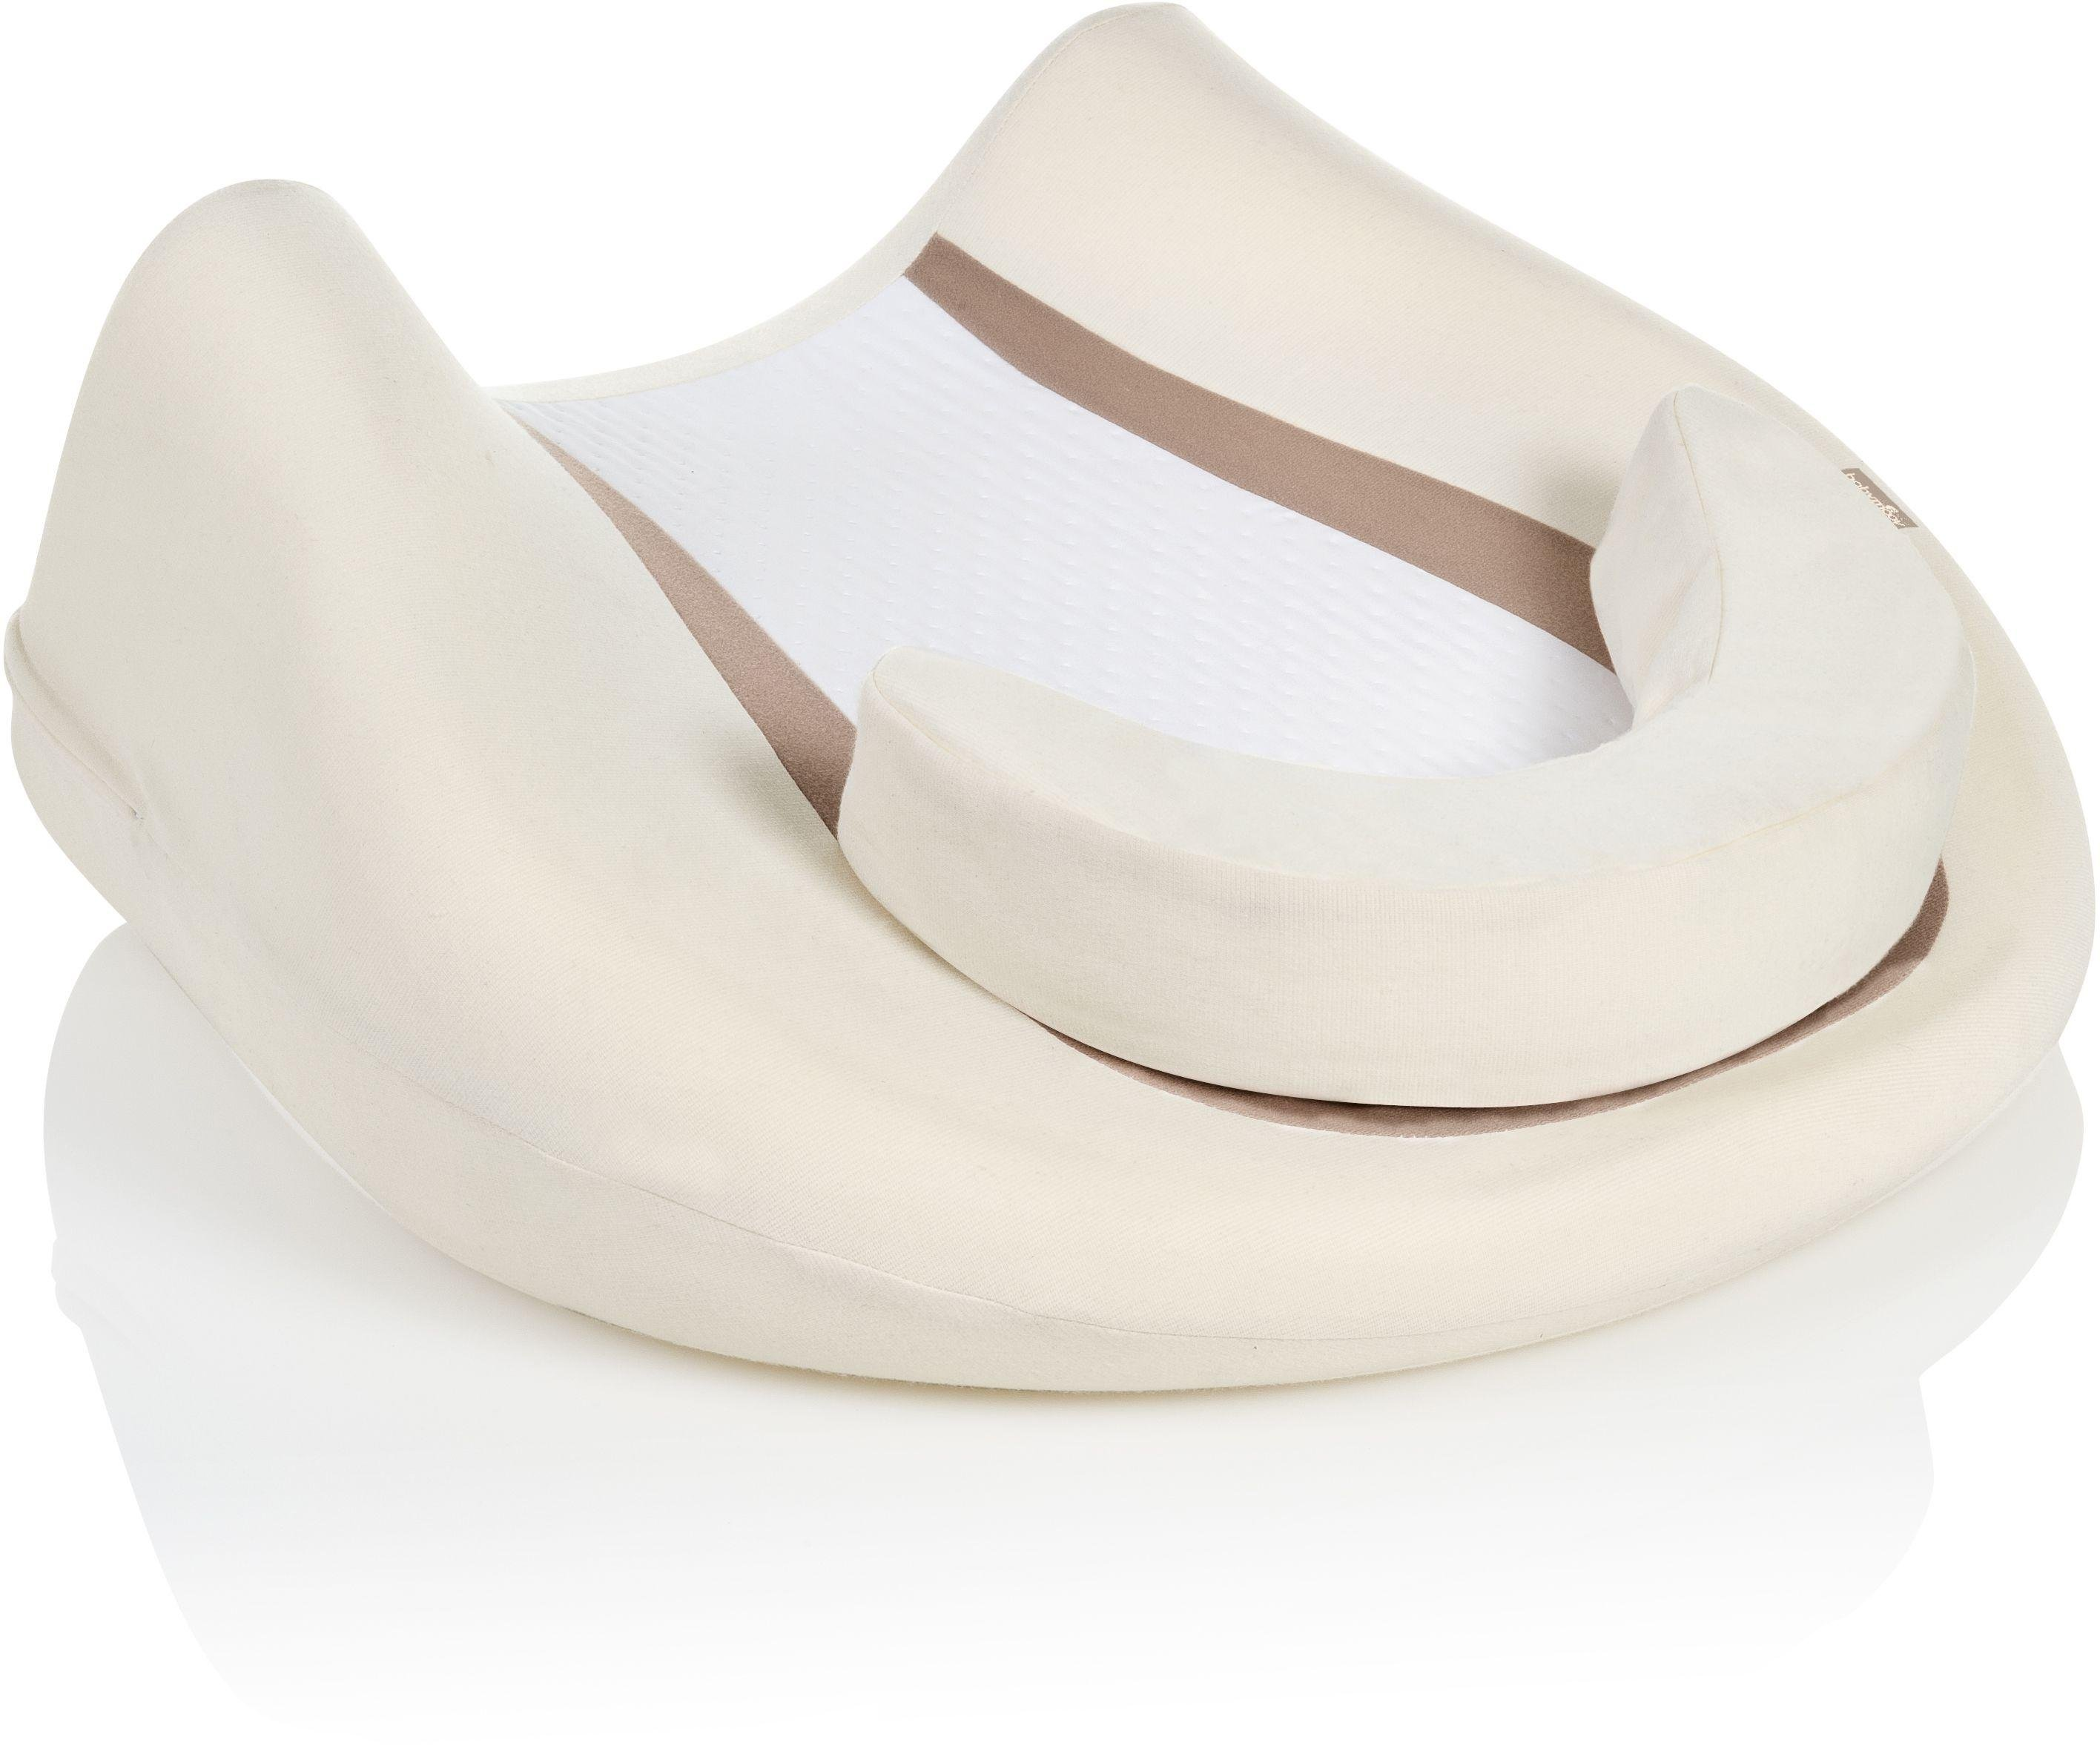 Babymoov Ergonest Crib Wedge. £59.99 at Argos